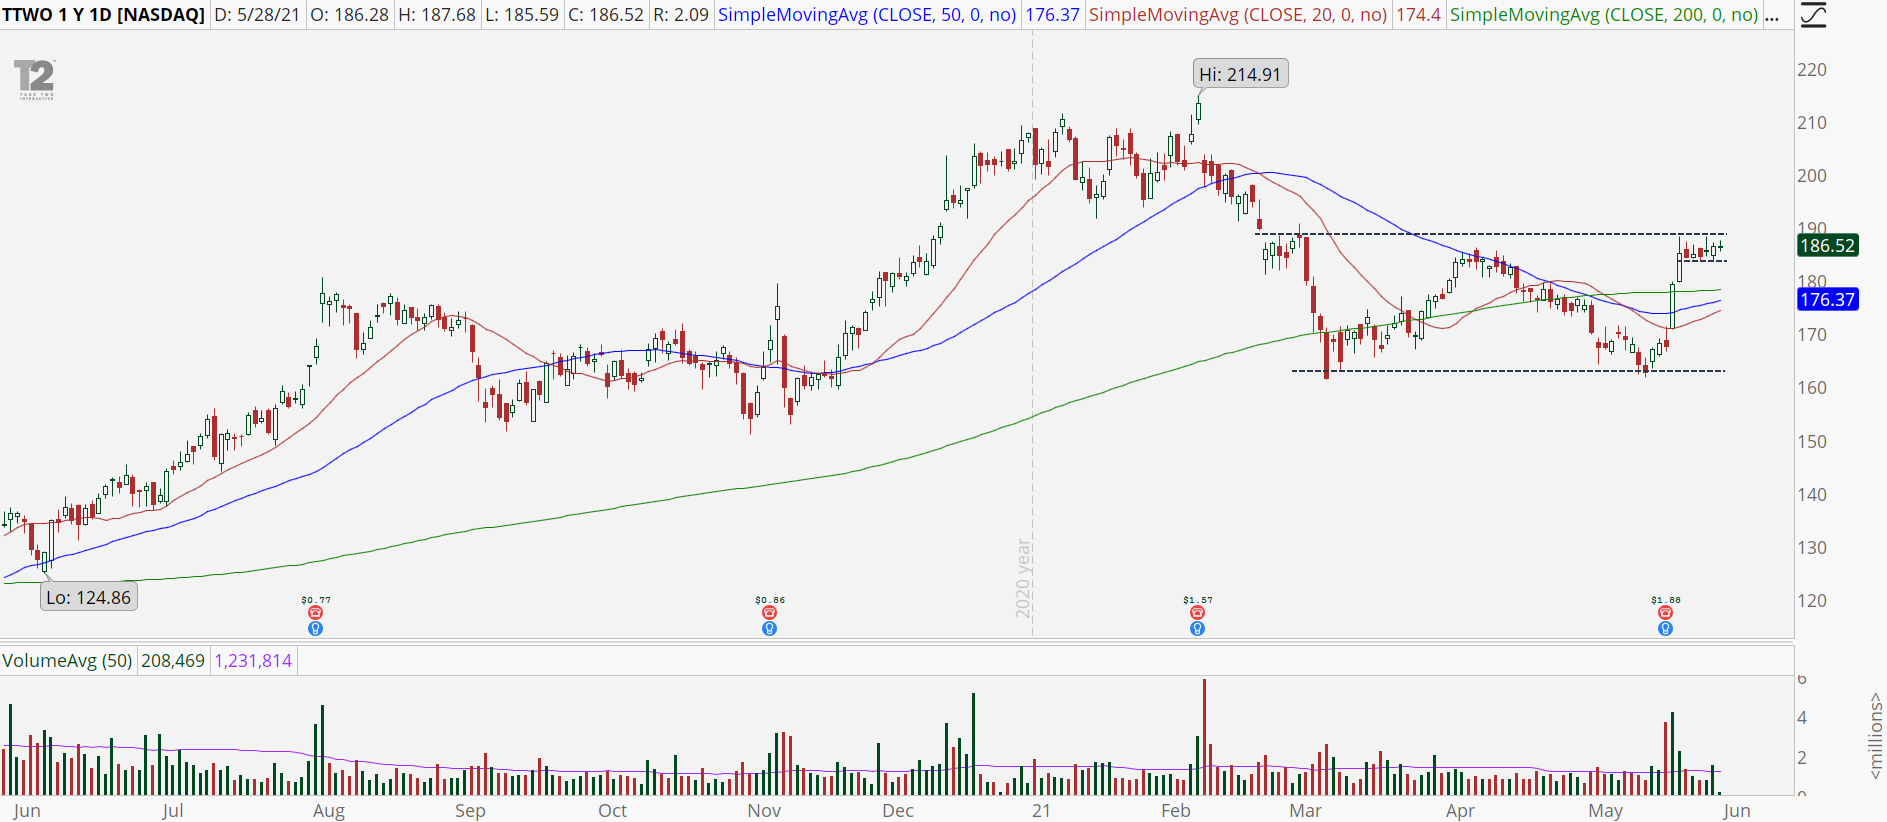 Take-Two Interactive (TTWO) with high base breakout pattern